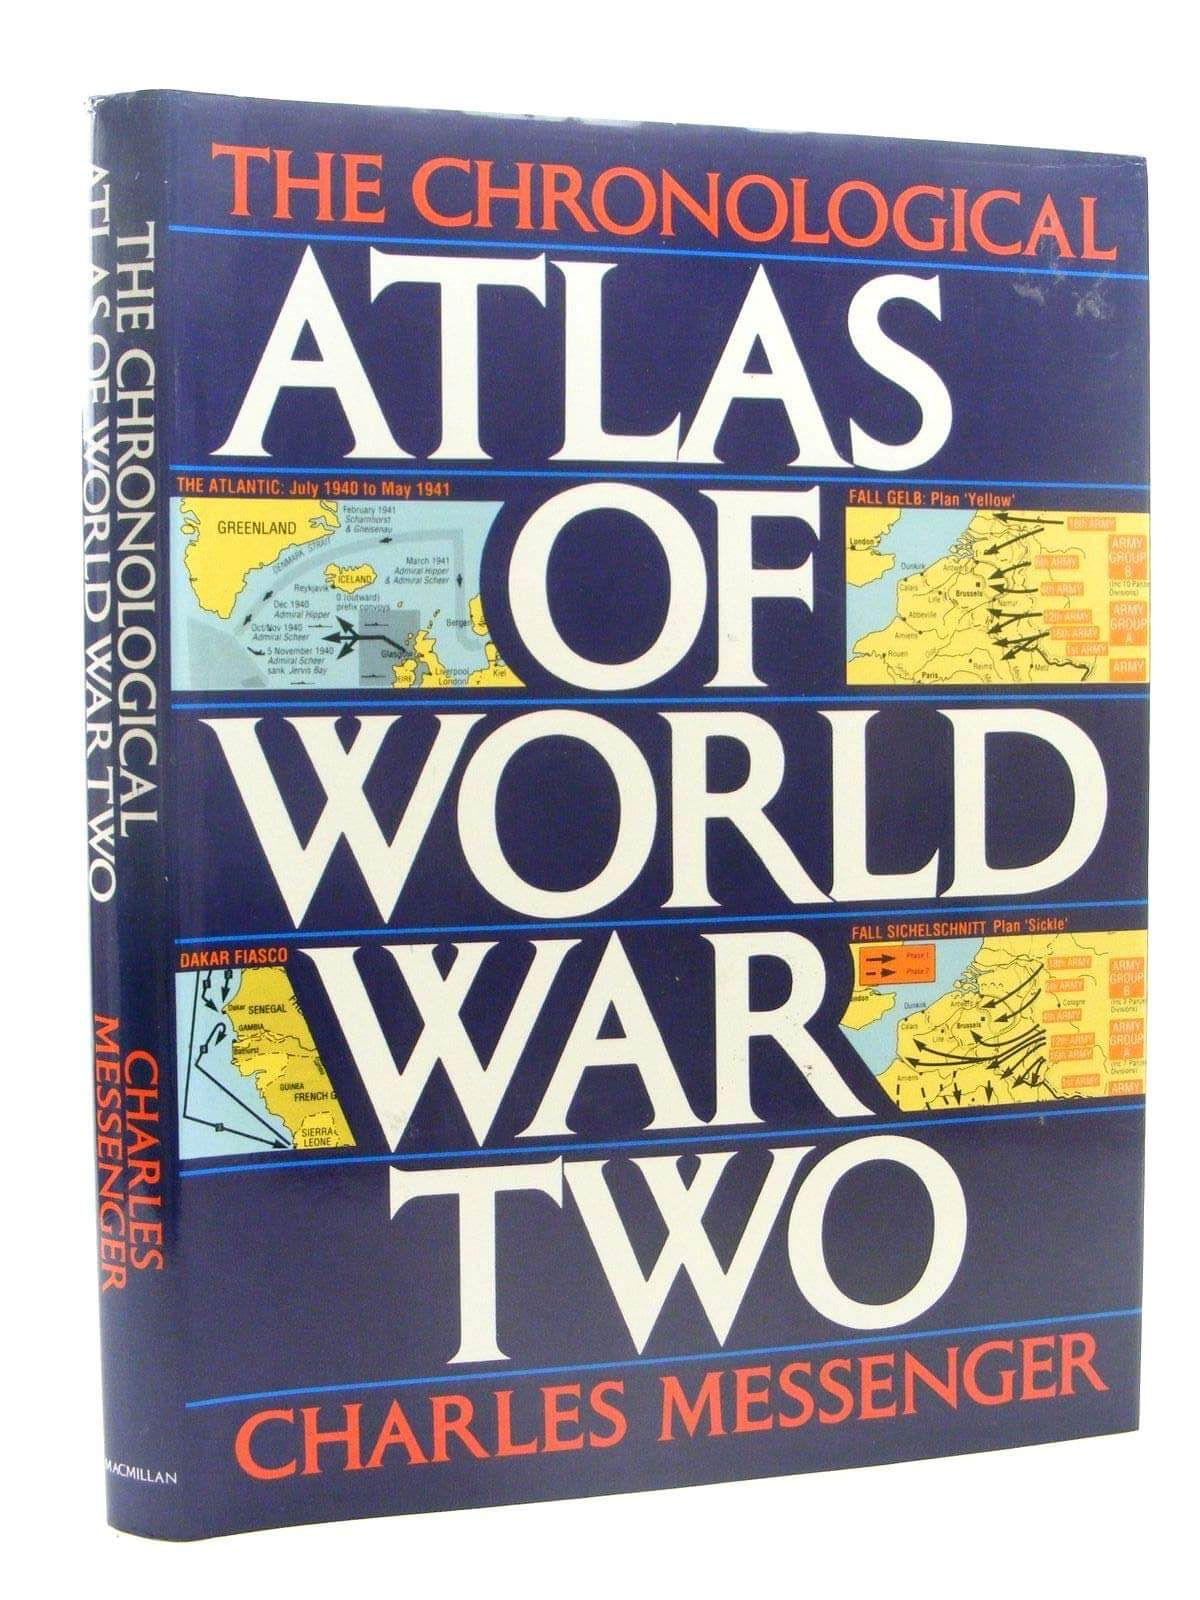 The Chronological Atlas of World War Two book cover image